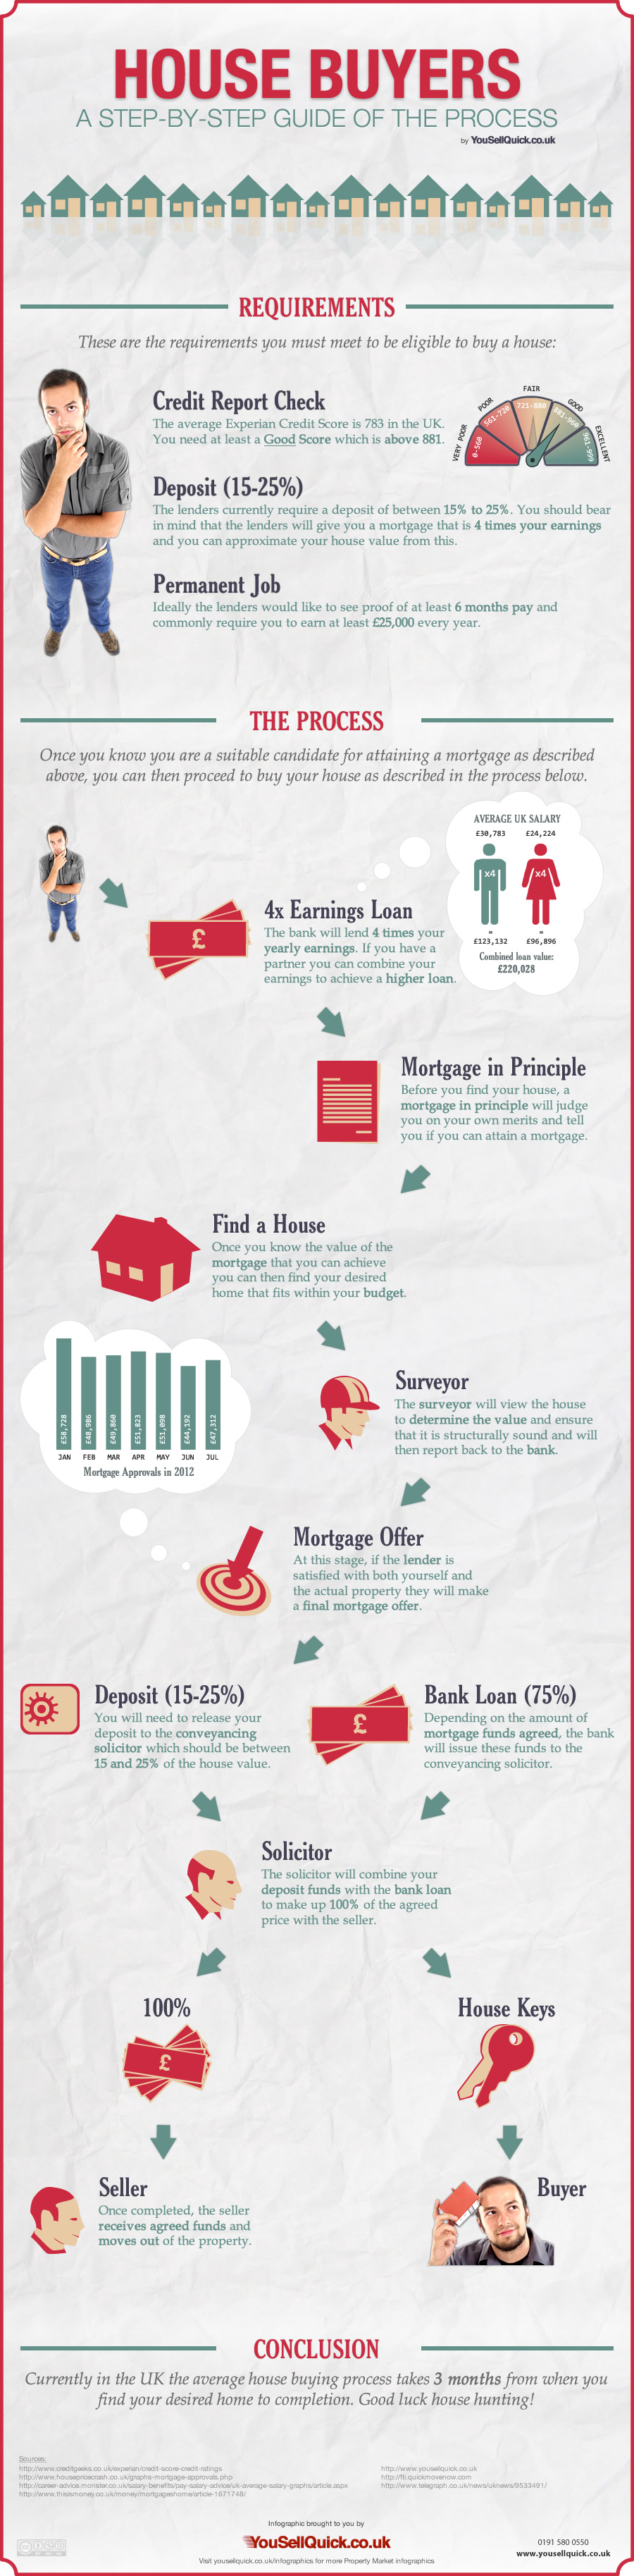 House Buyers - Step by Step Process of Buying a House